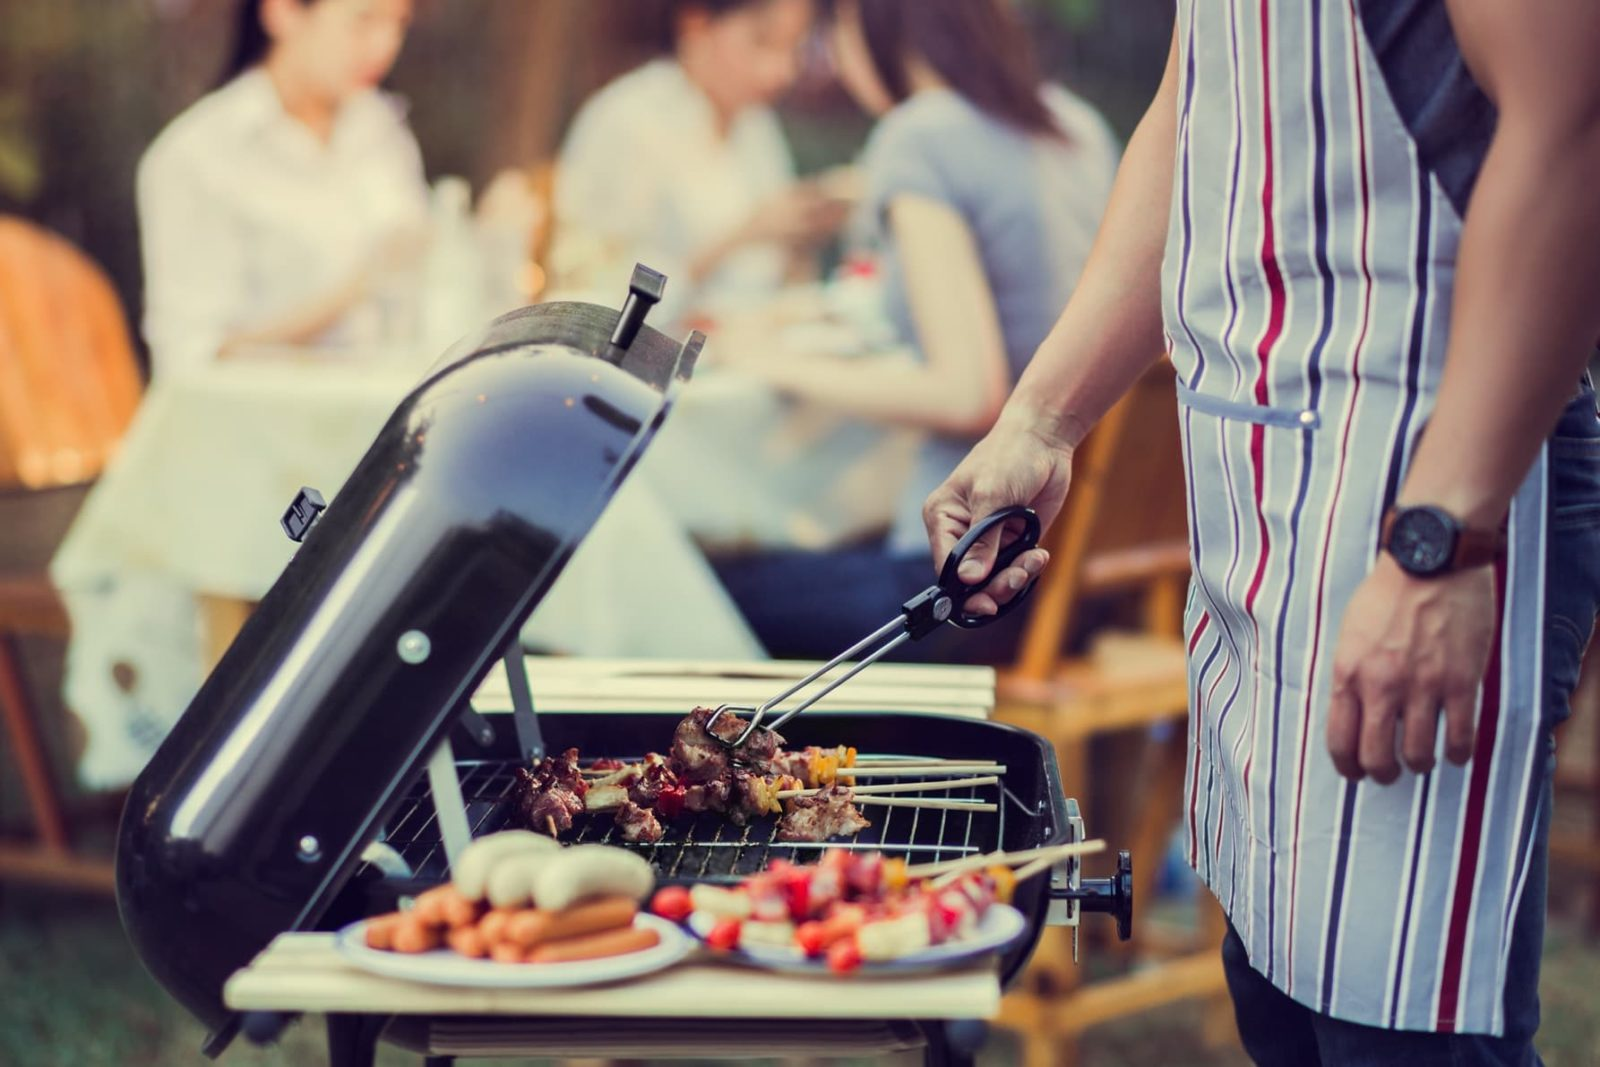 a bbq and side table with people eating in the background